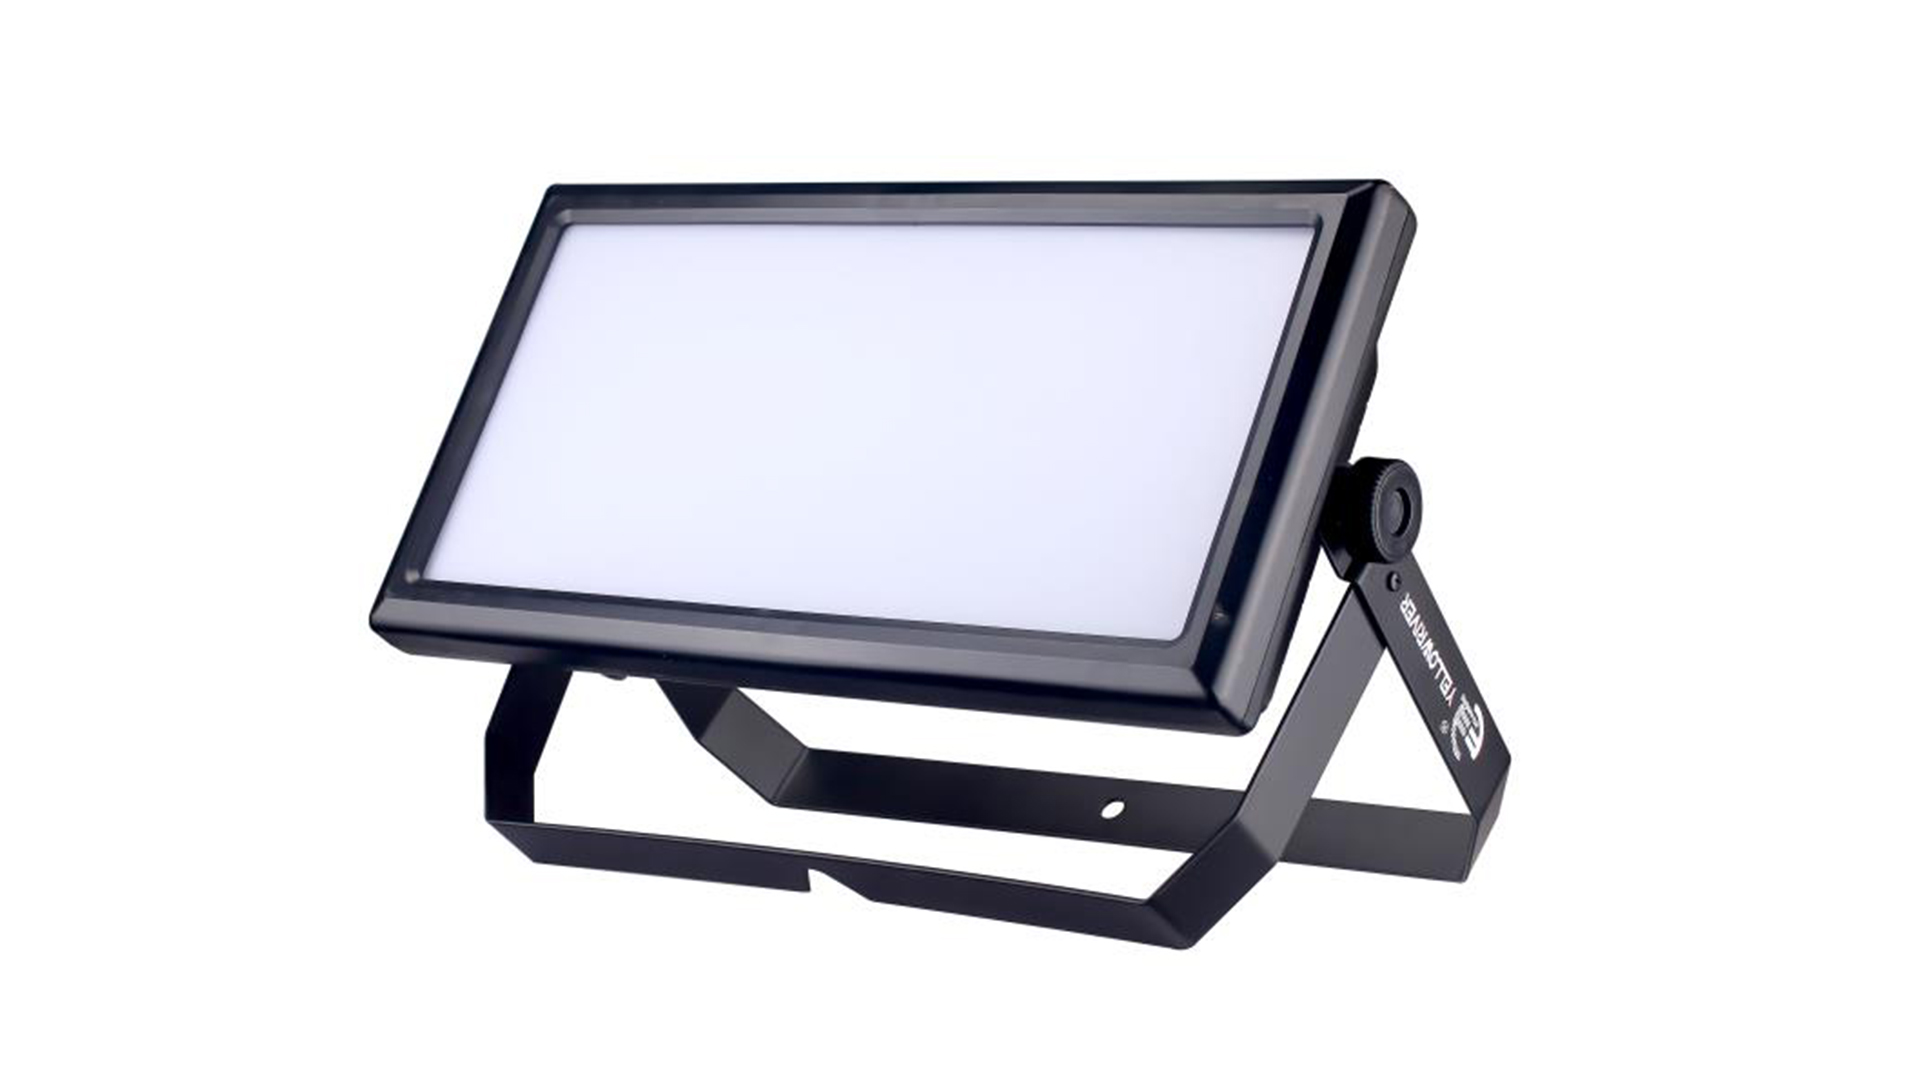 China Yellow river led meeting room panel light YR-W224WW manufacturer